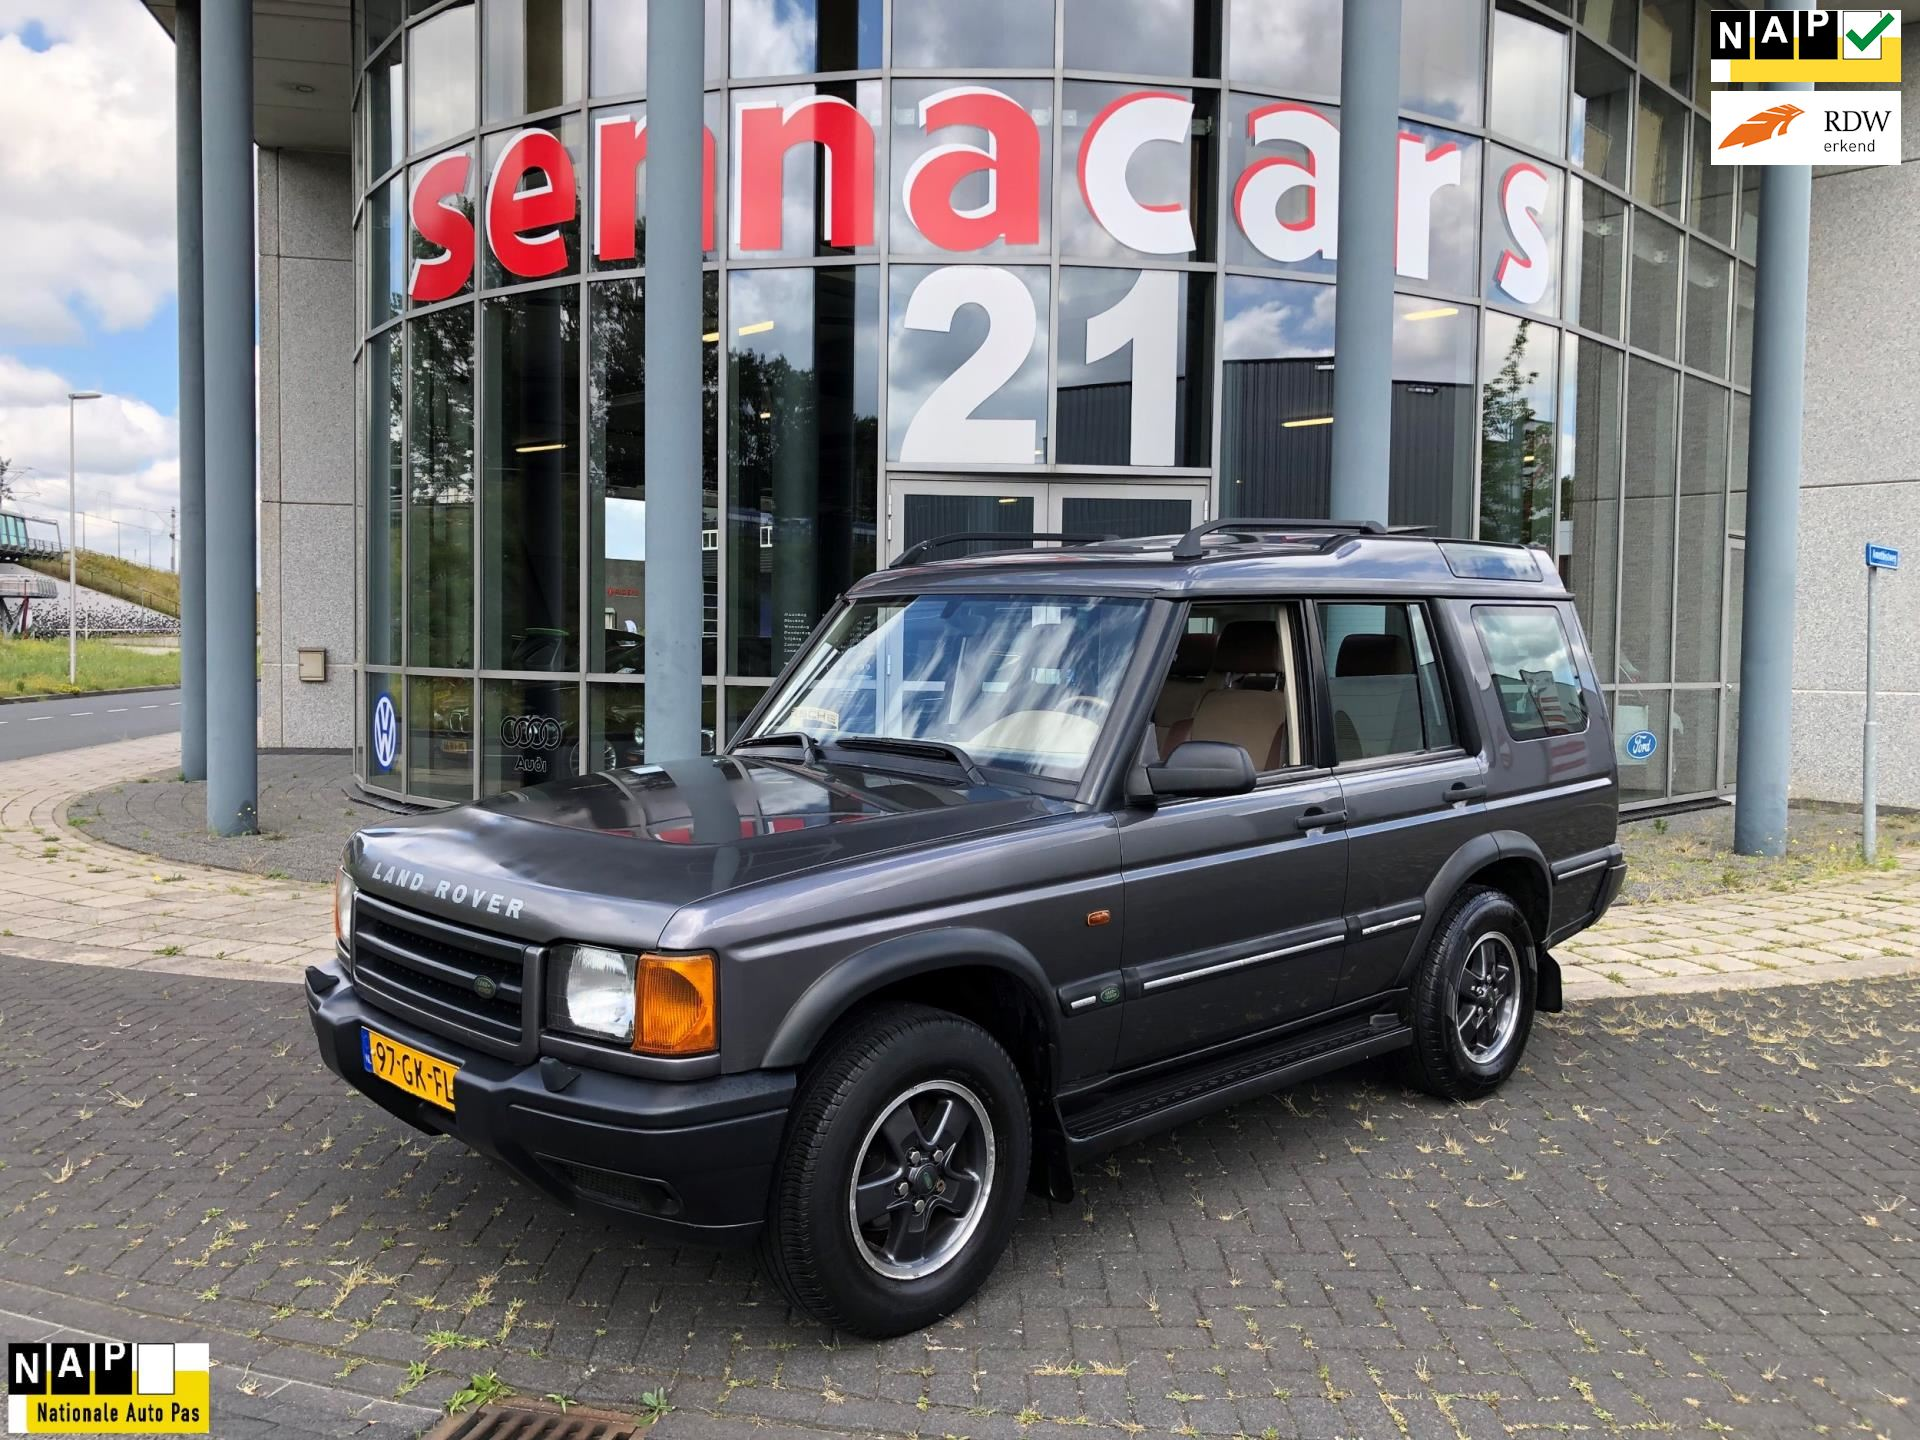 Land Rover Discovery 2 occasion - Senna Cars